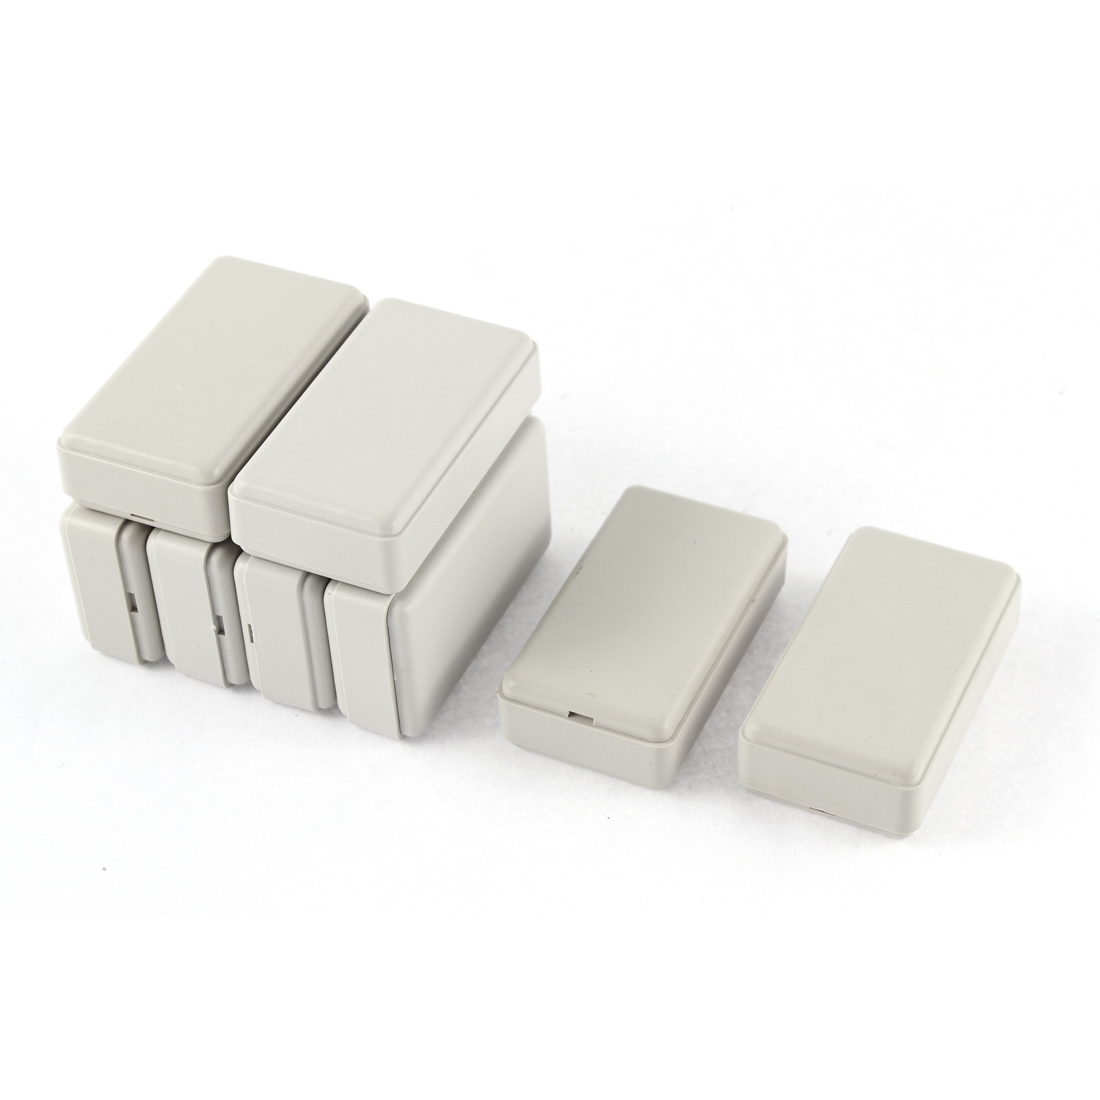 8pcs Circuit DIY Gray Plastic Mini Junction Box Case Container 49 x 28 x 14mm